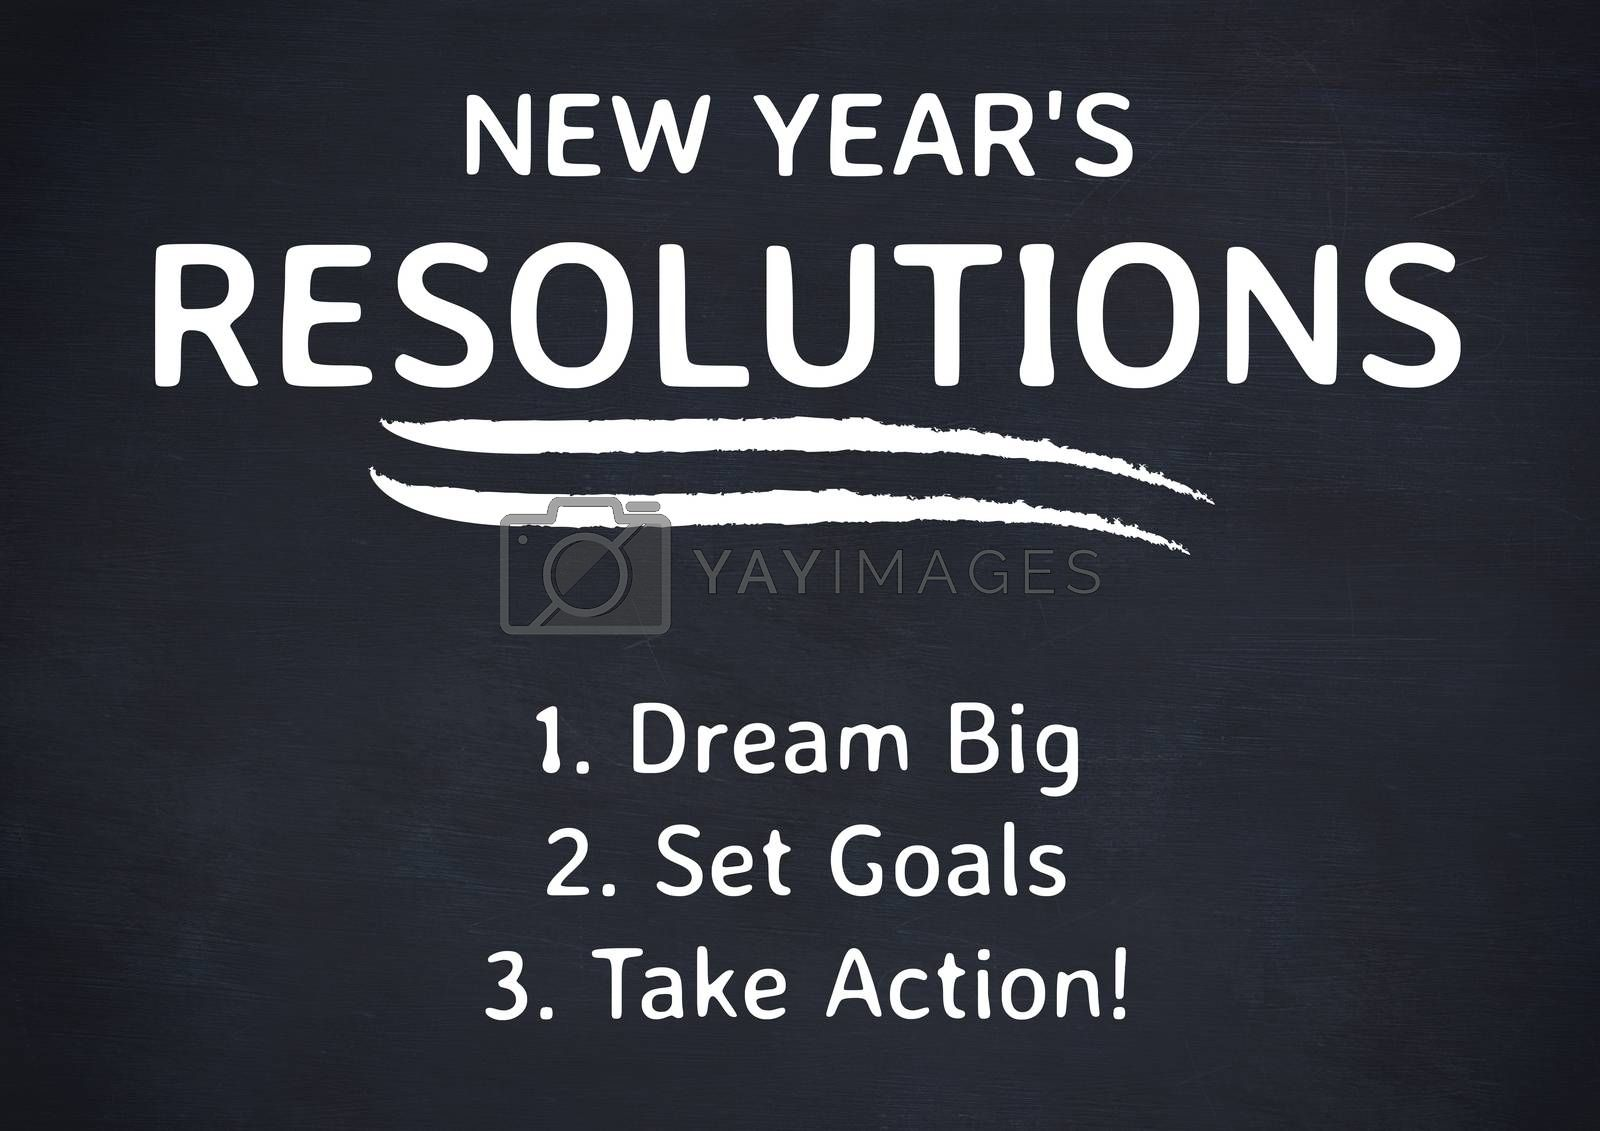 List of new year resolution goals against black background